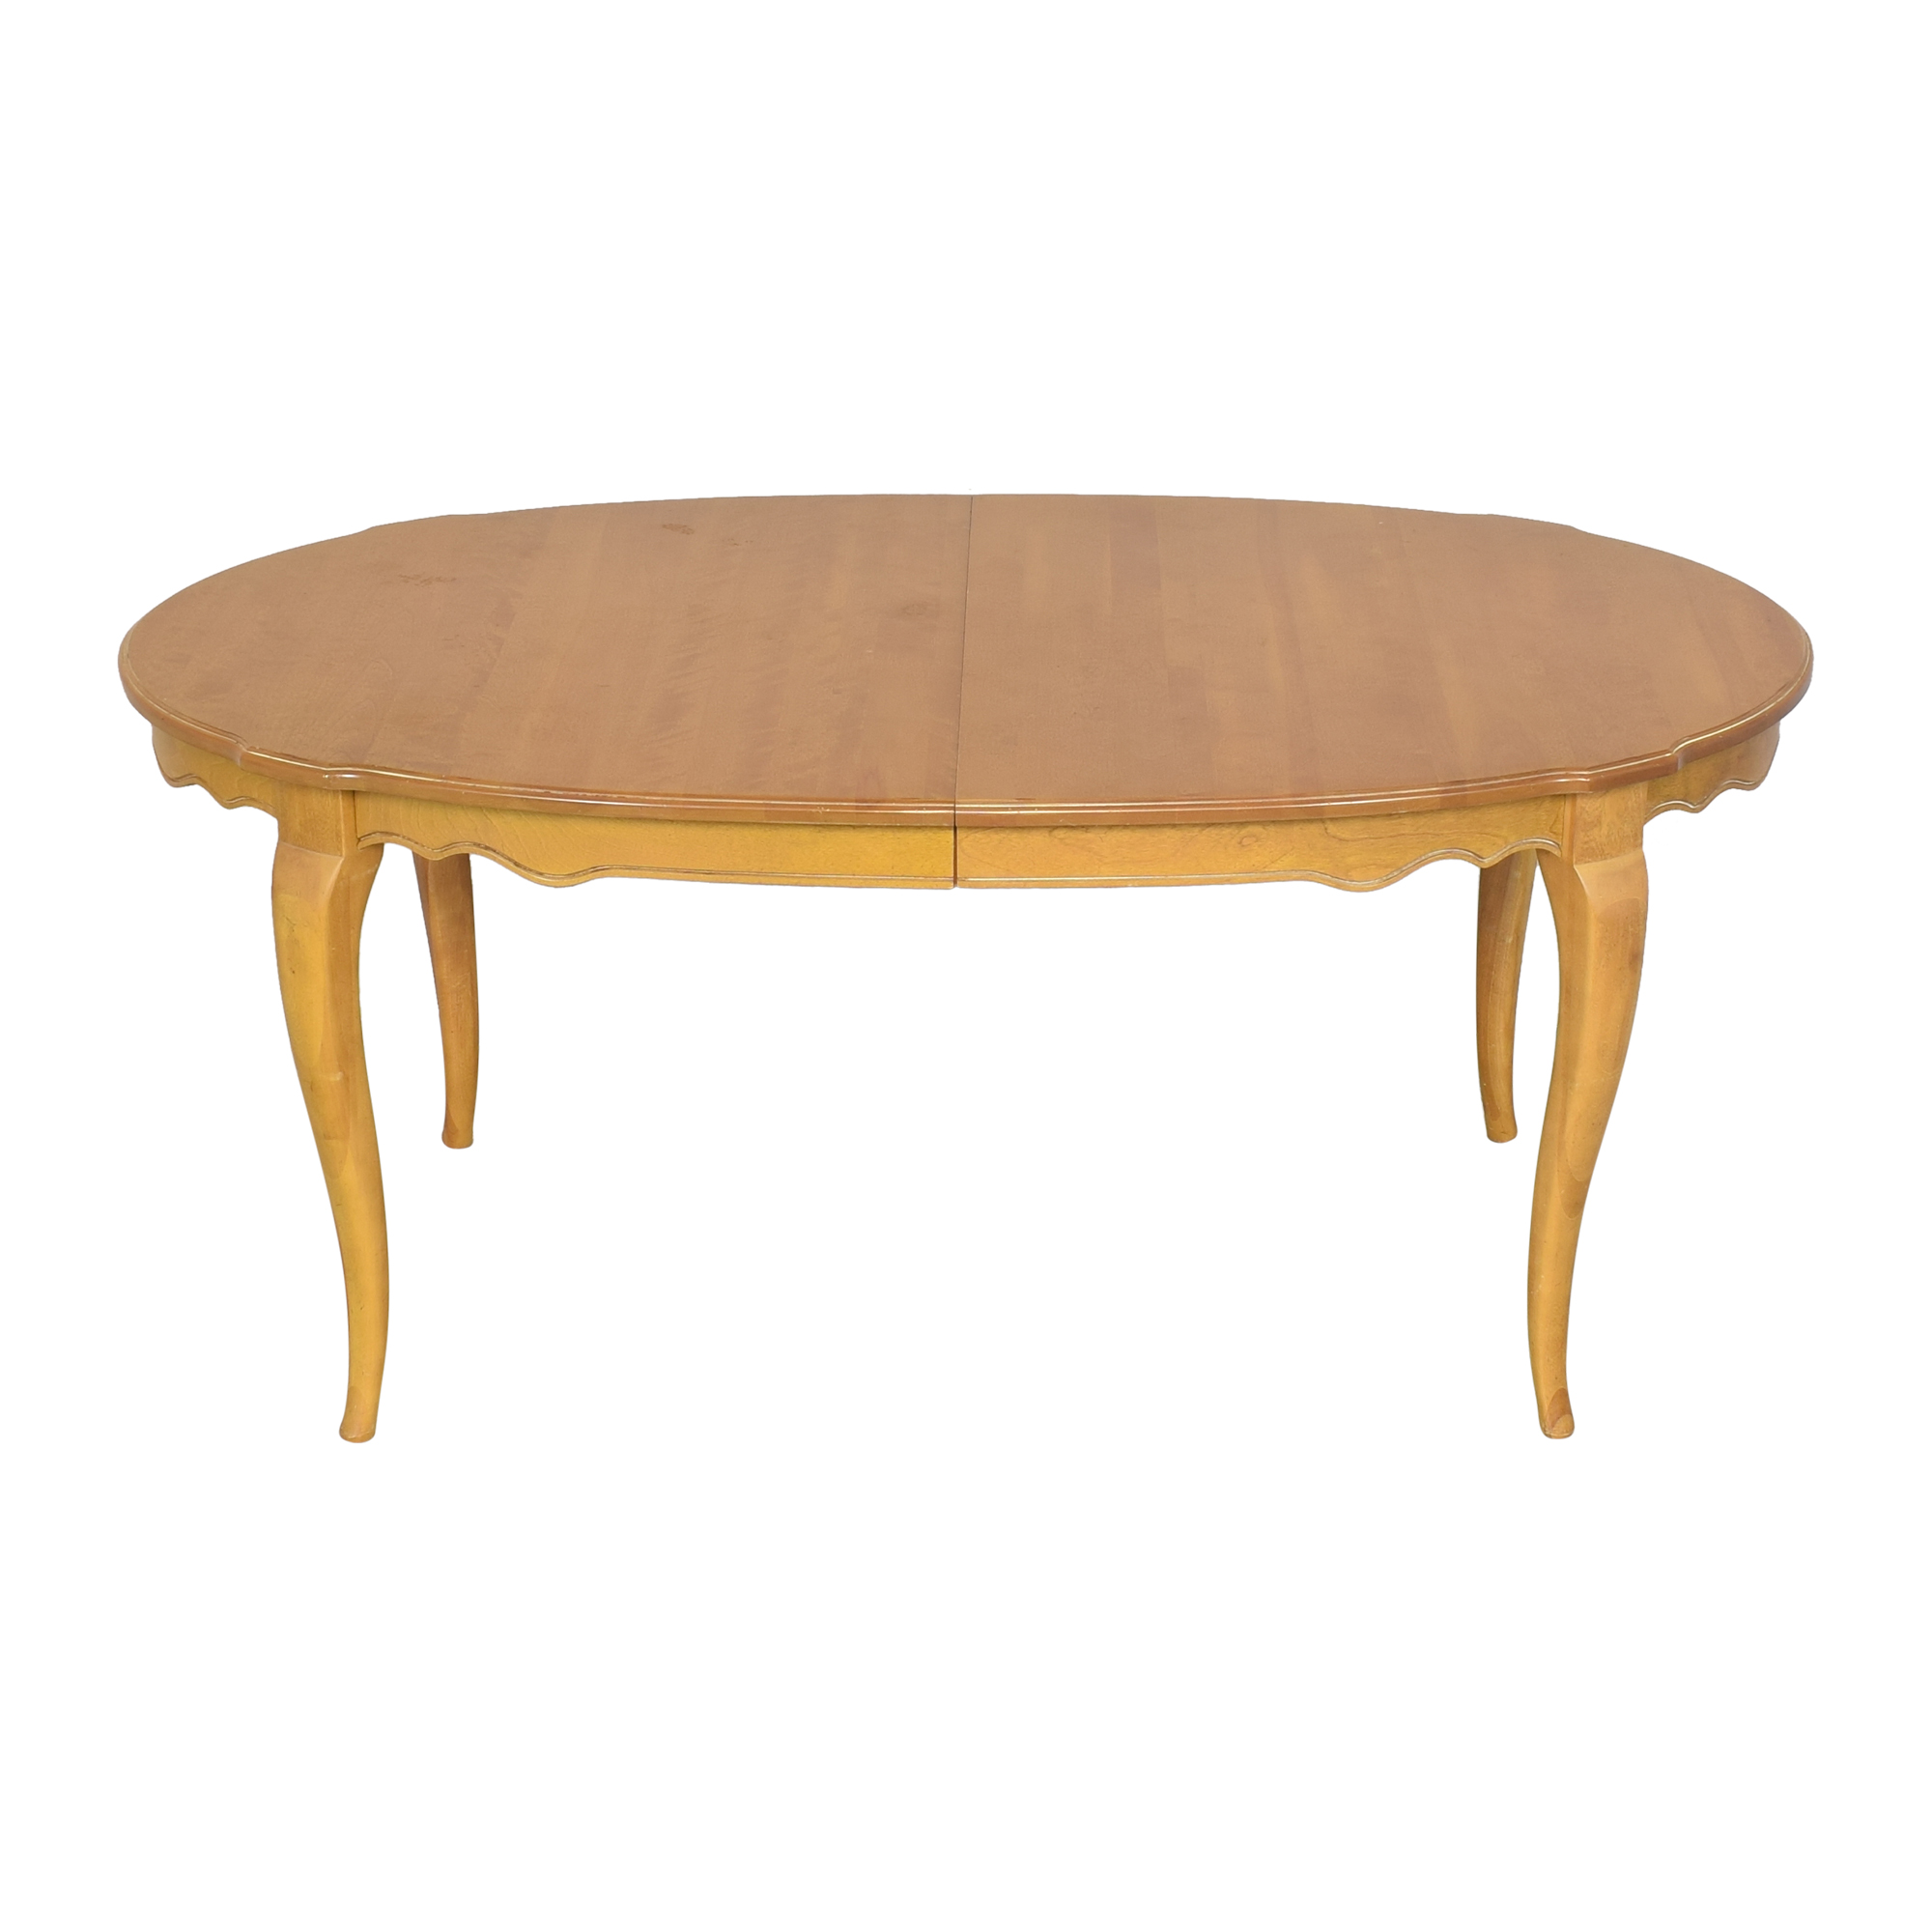 buy Ethan Allen Country French Oval Extendable Dining Table Ethan Allen Dinner Tables